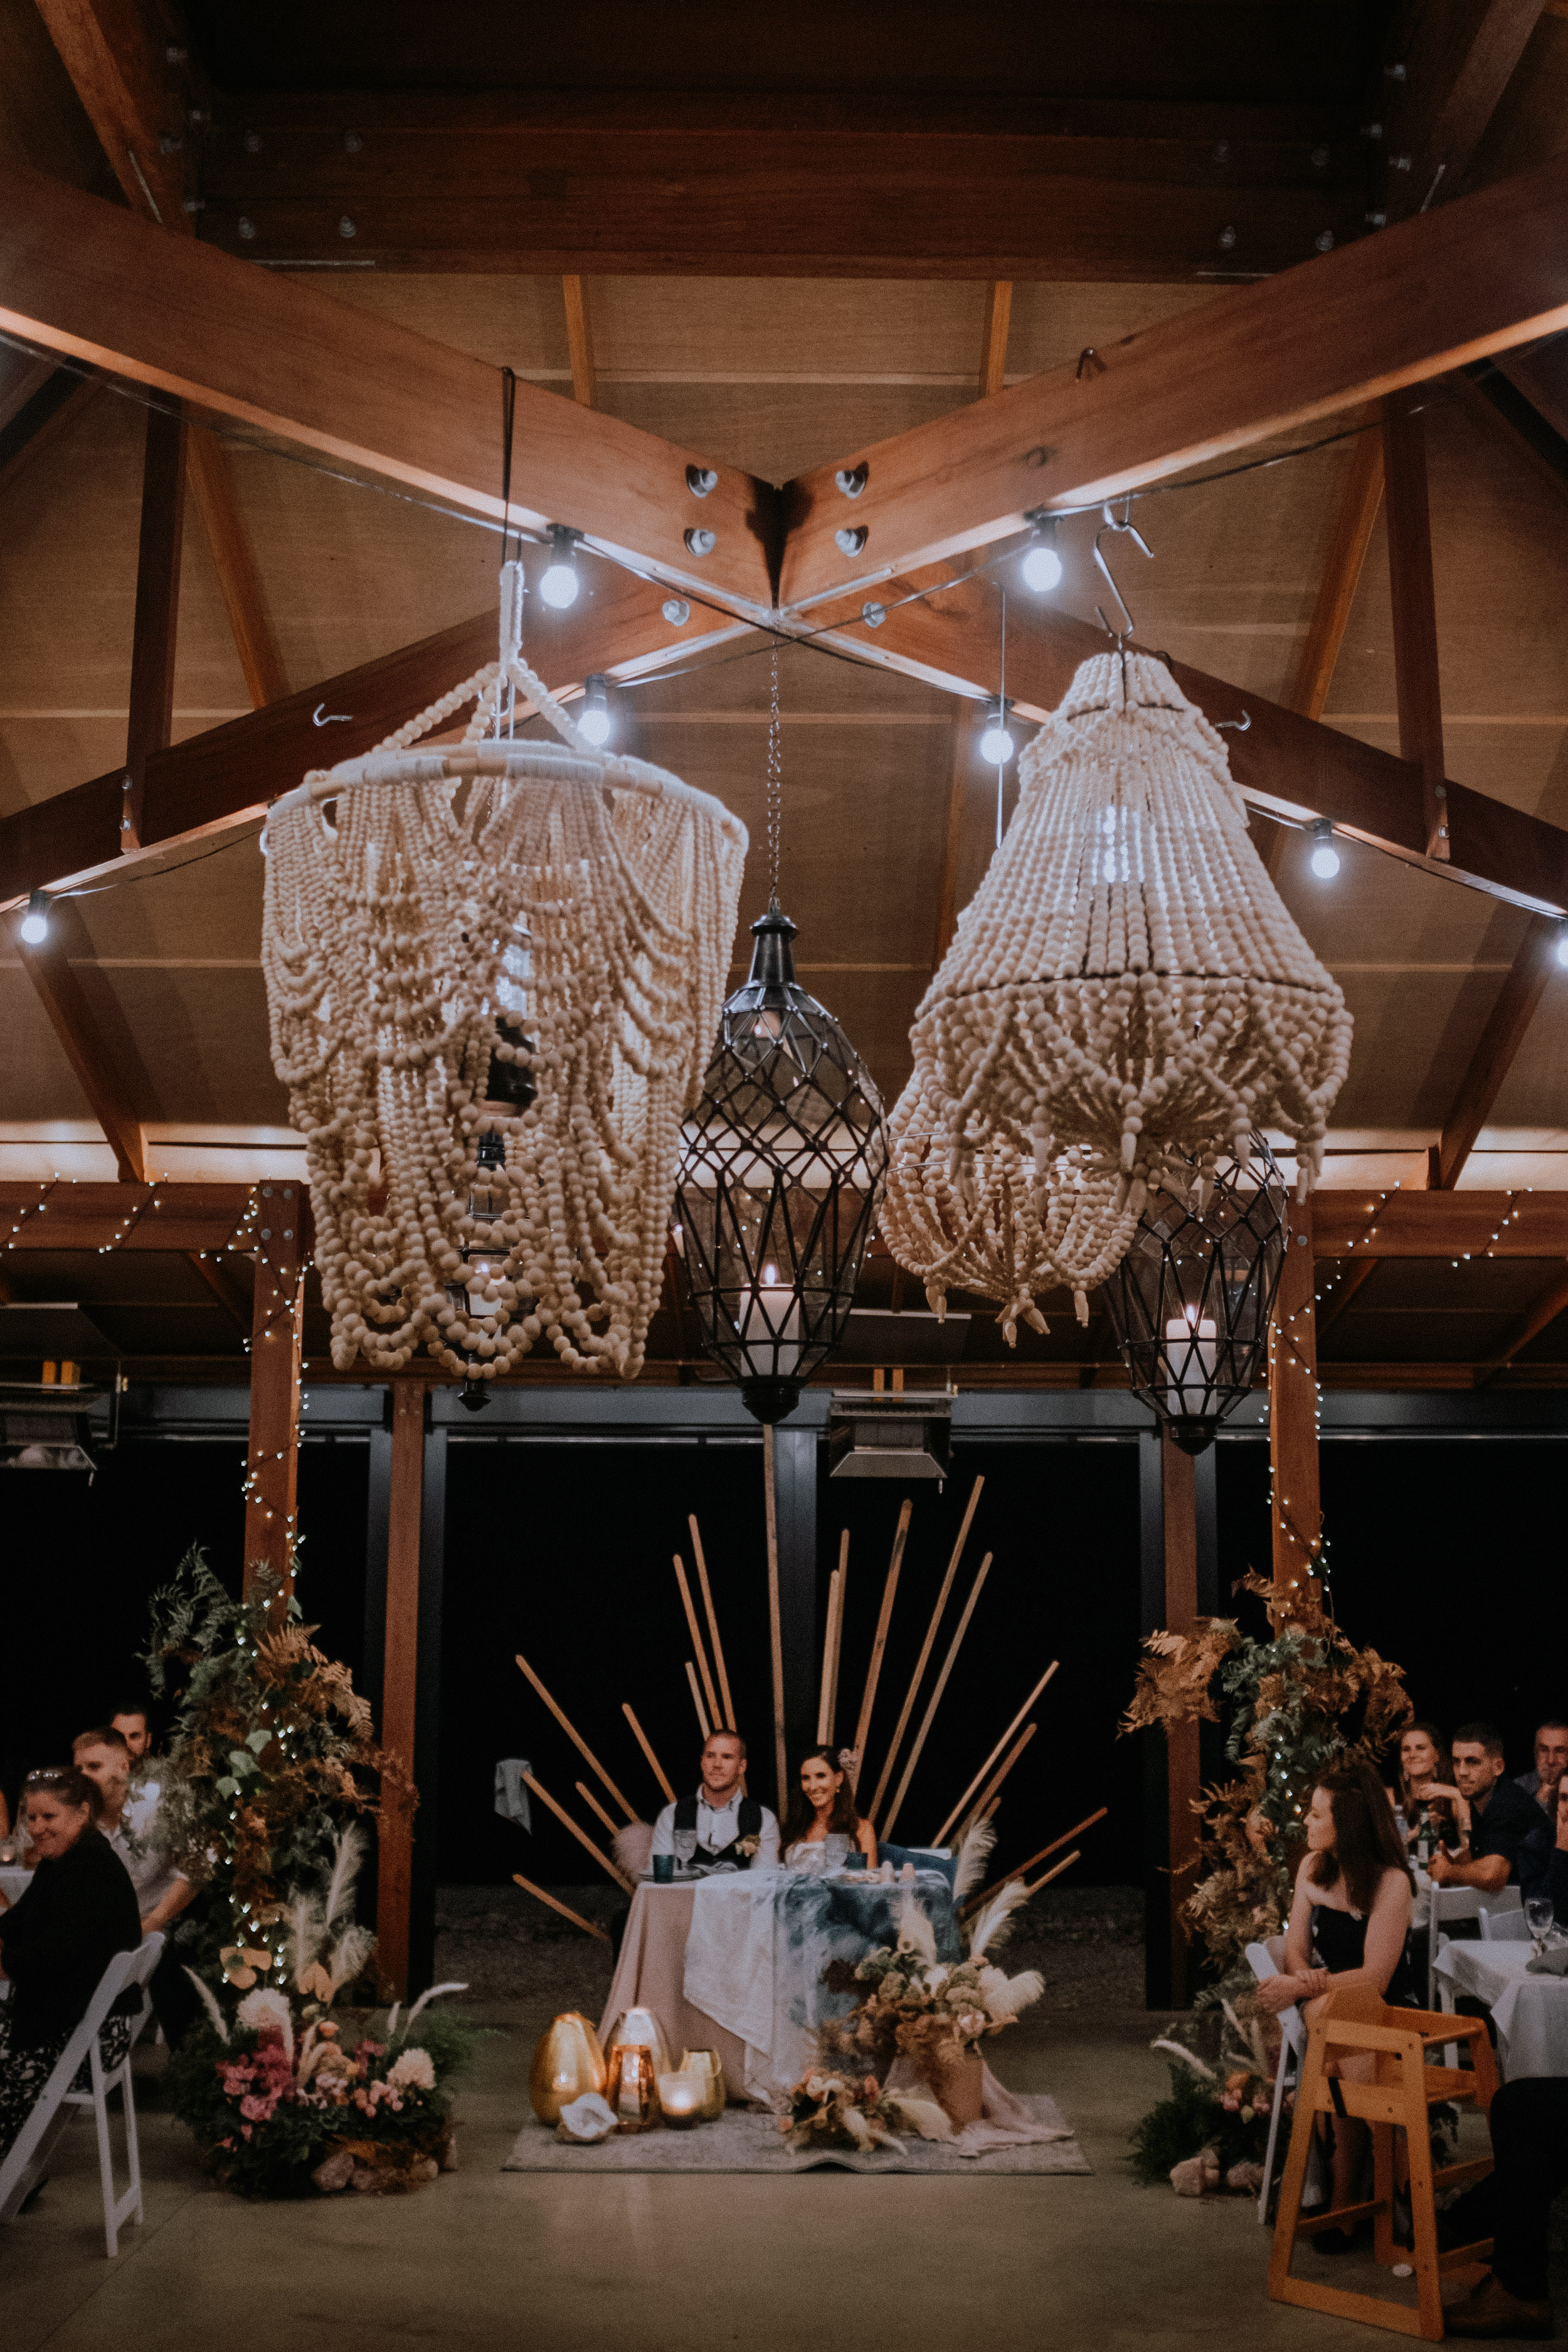 Wedding reception in the Pavilion at Seclusions Blue Mountains, styling by The Golden Dandelion